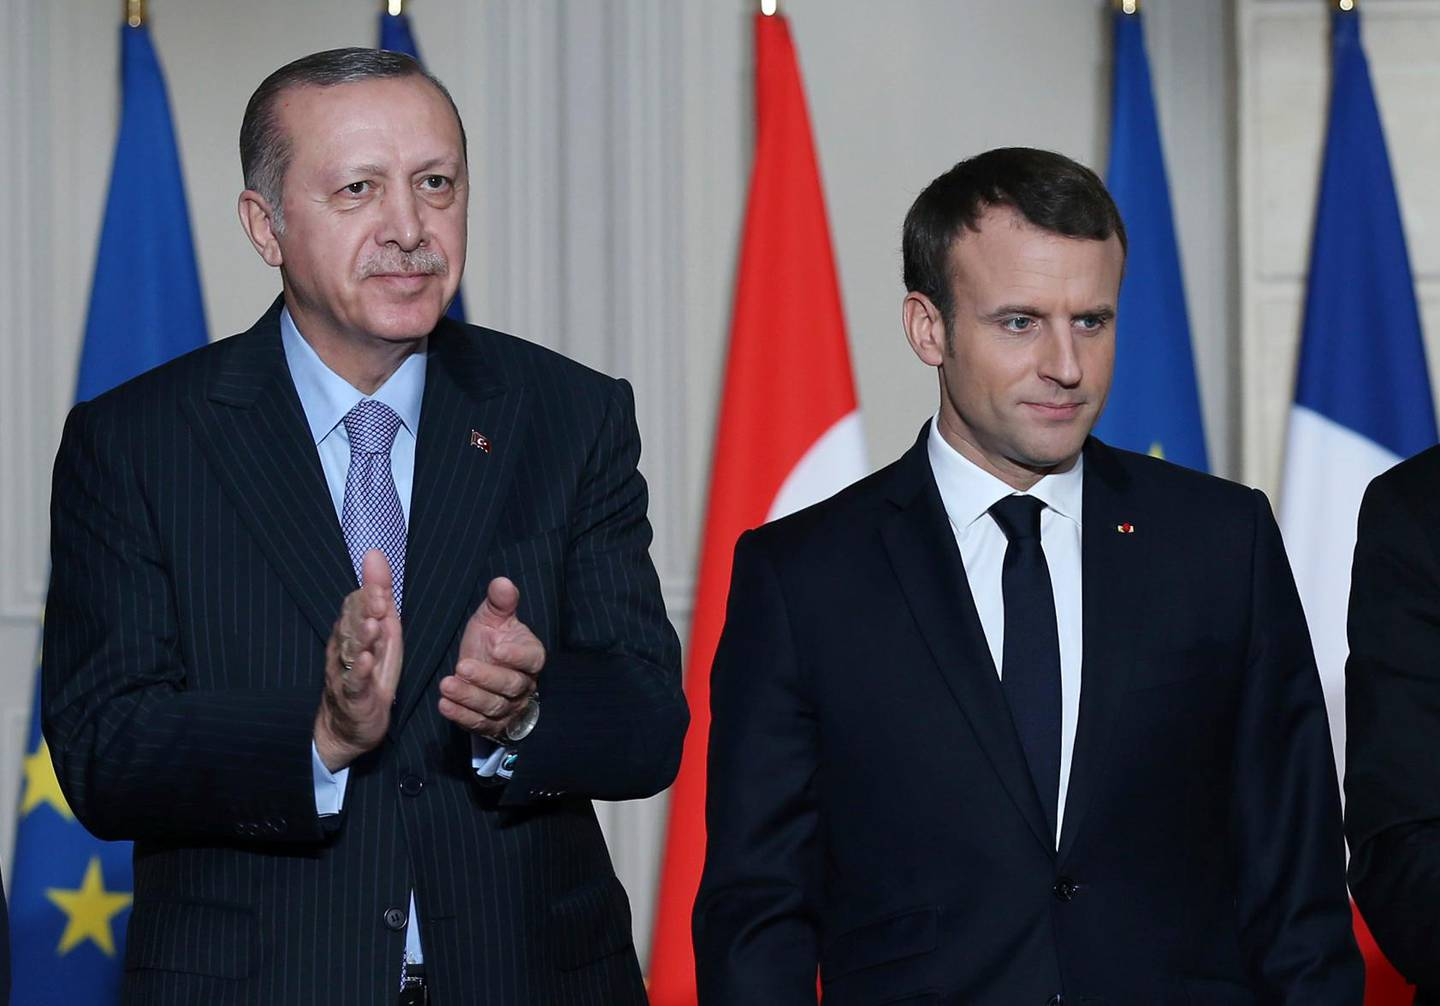 French President Emmanuel Macron, right, and Turkish President Recep Tayyip Erdogan stand during a signing ceremony at the Elysee Palace in Paris, Friday, Jan. 5, 2018.  Erdogan is in Paris for talks with Macron amid protests over press freedom and the deteriorating state of human rights in Turkey. (Yasin Bulbul/Pool Photo via AP)